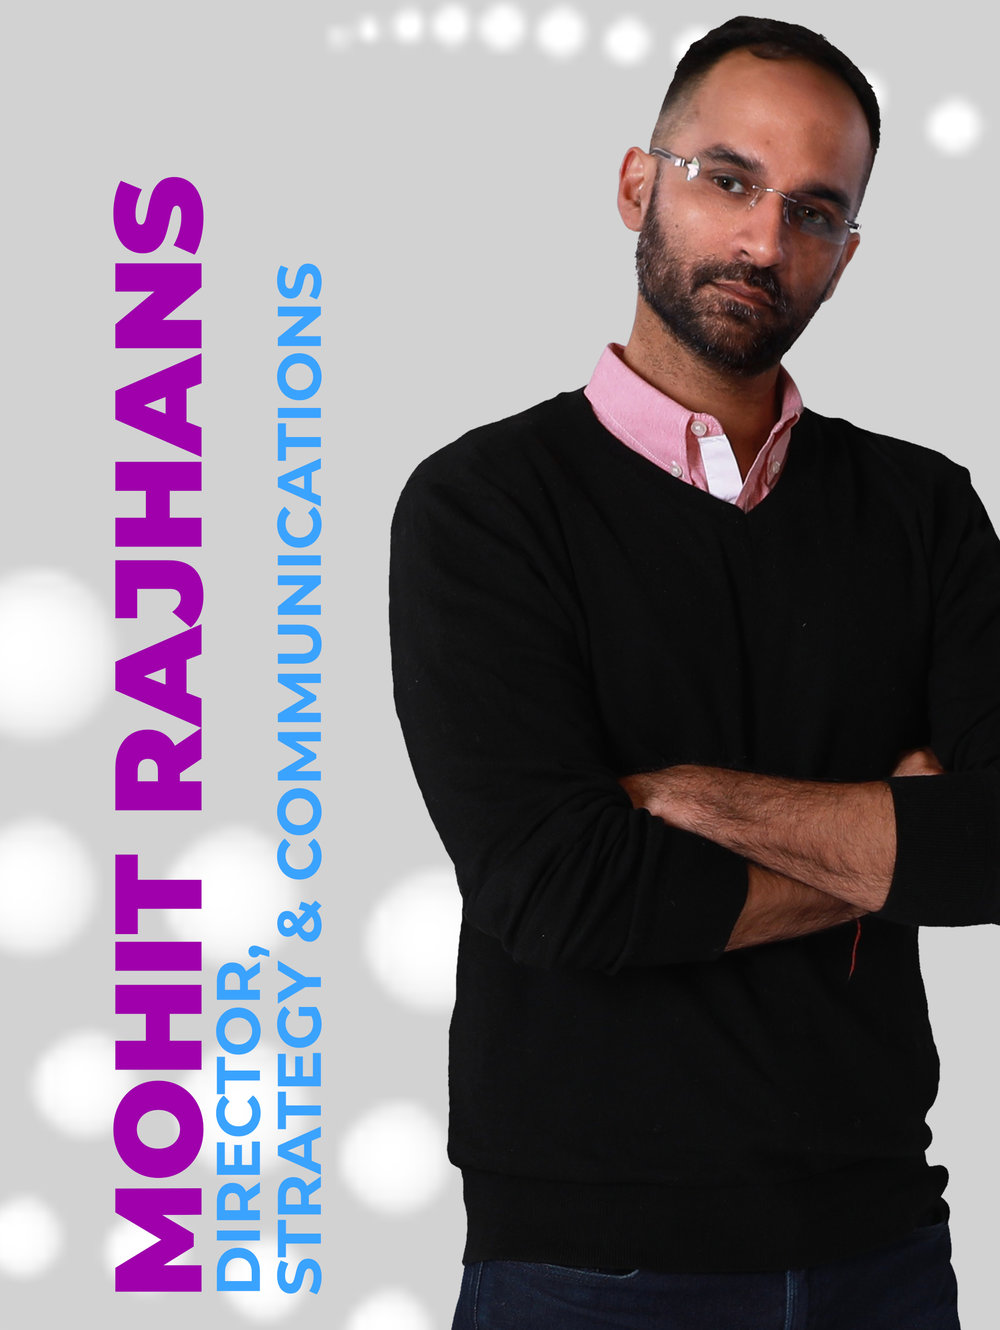 Mohit Rajhans - Director Strategy & Communications